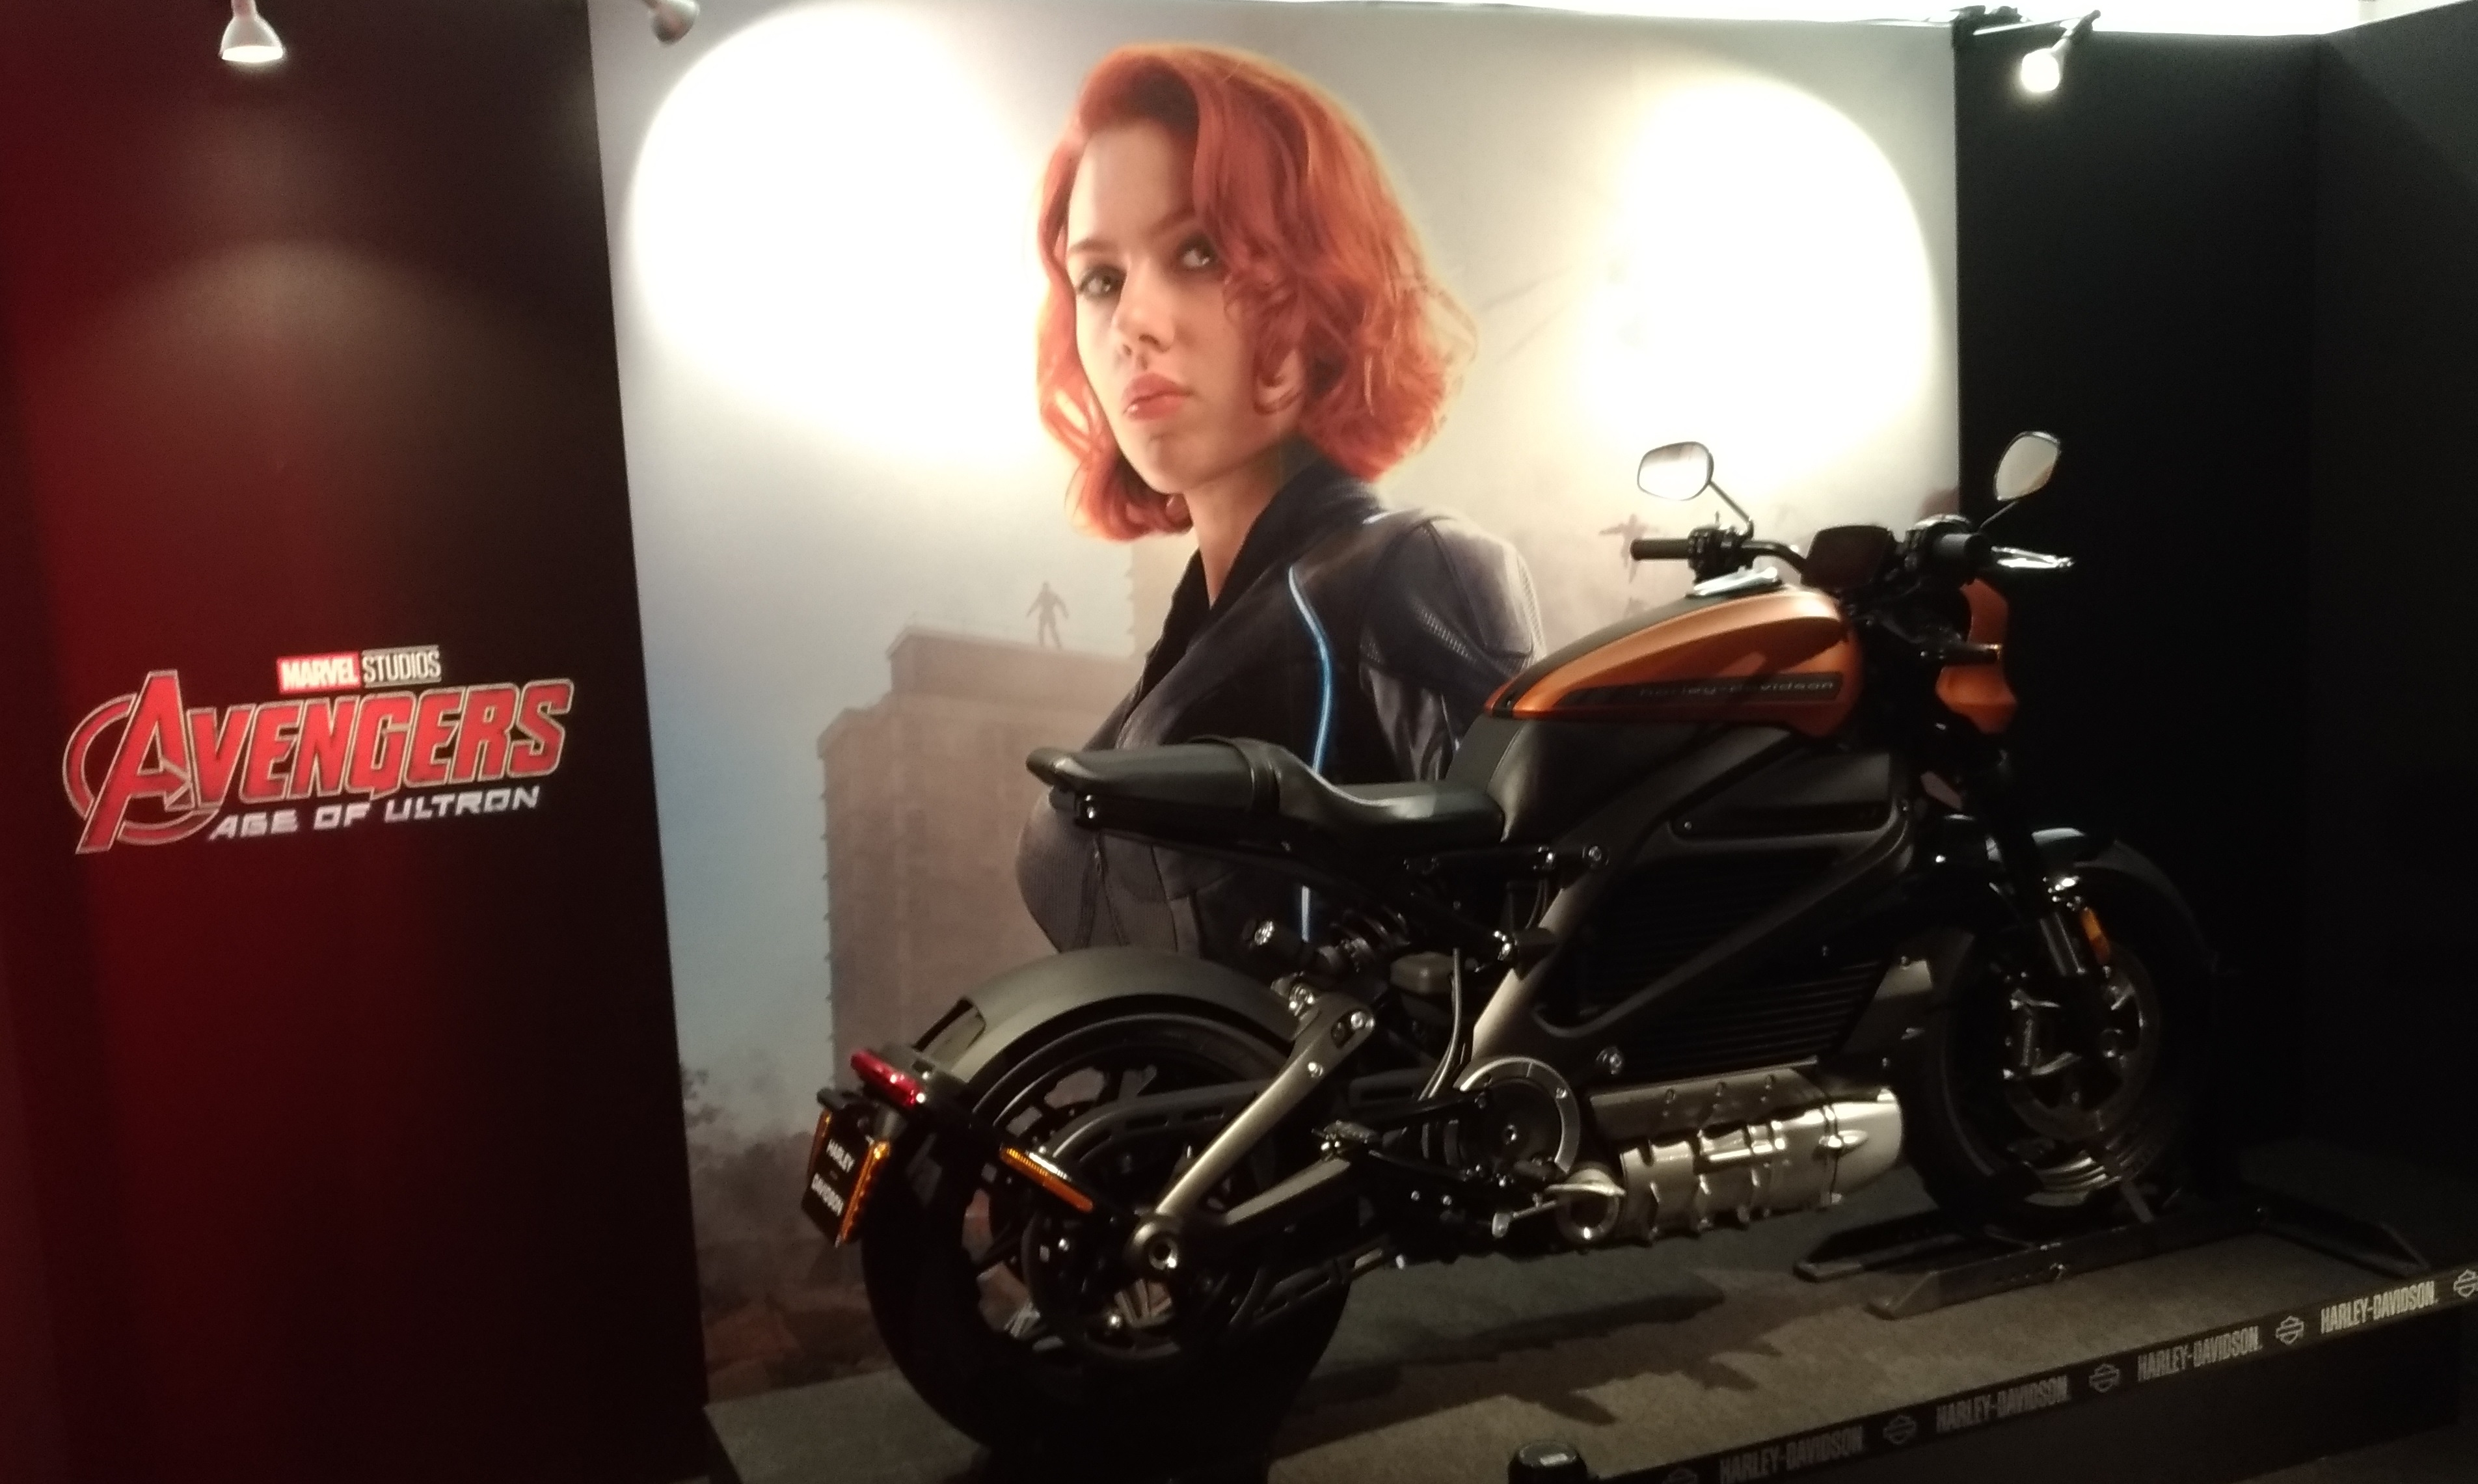 marvel_movies_events_umeda_osaka_0921_1.jpg